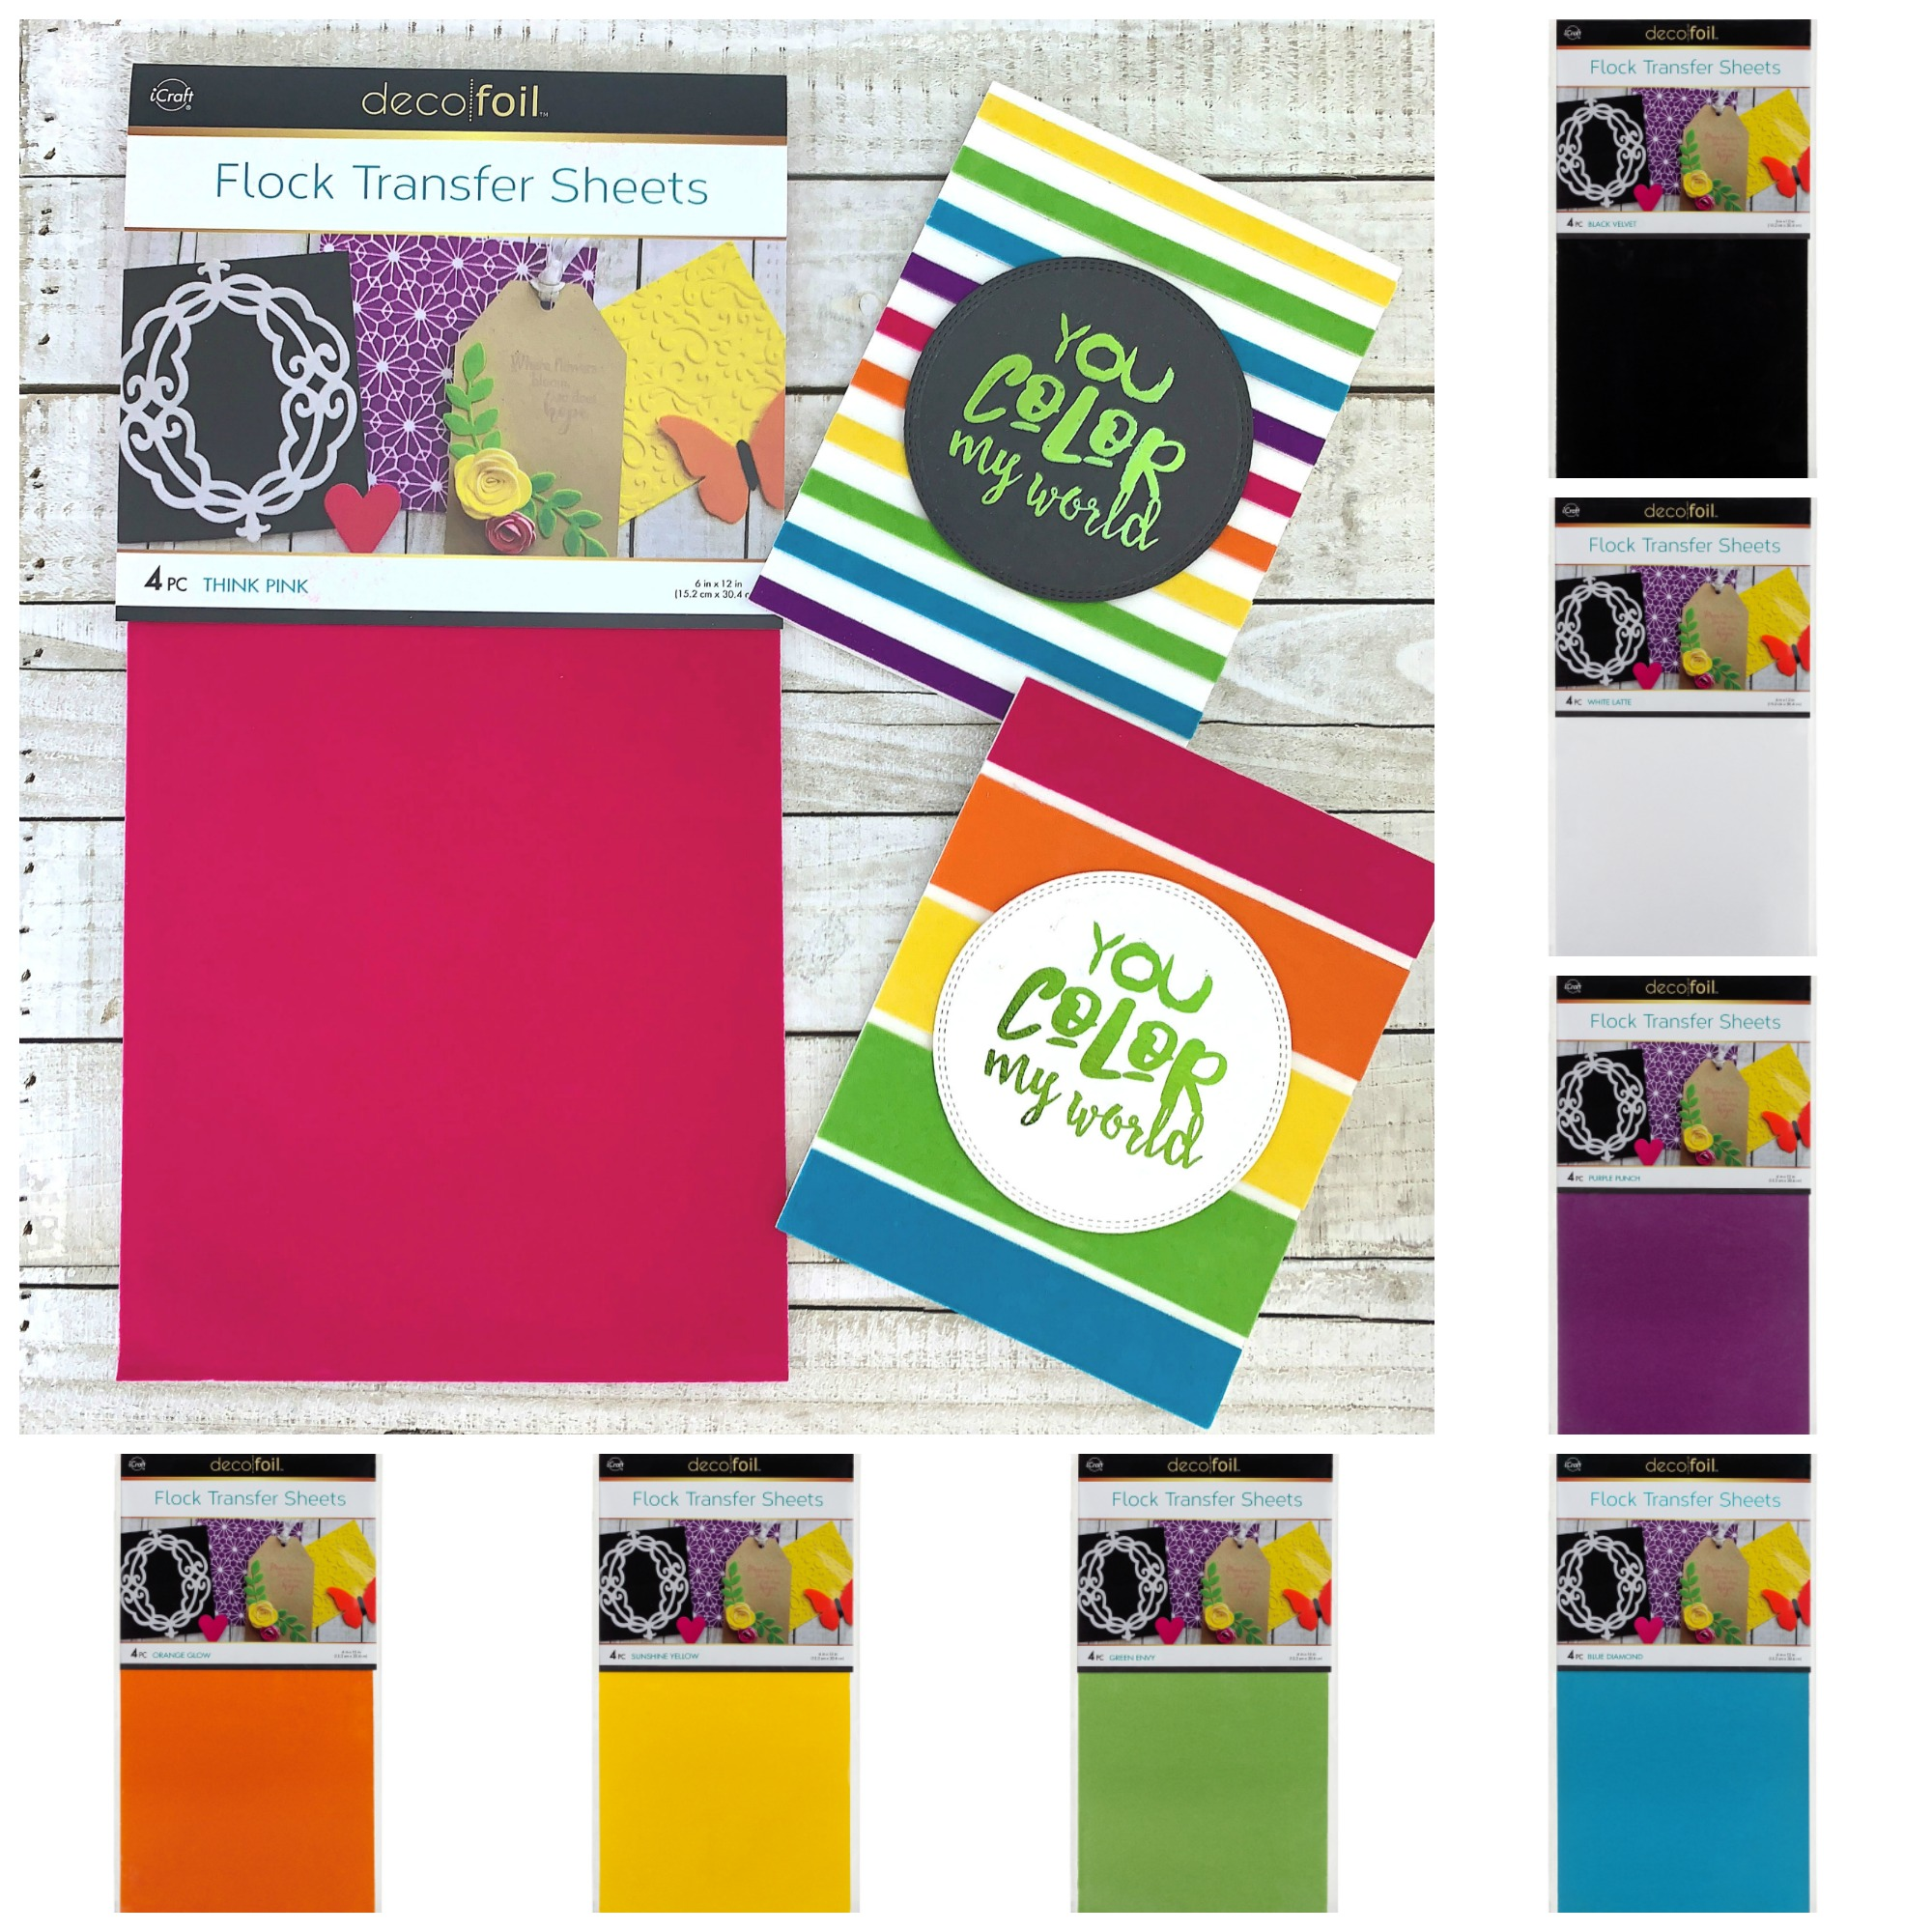 Deco Foil Flock Transfer Sheets